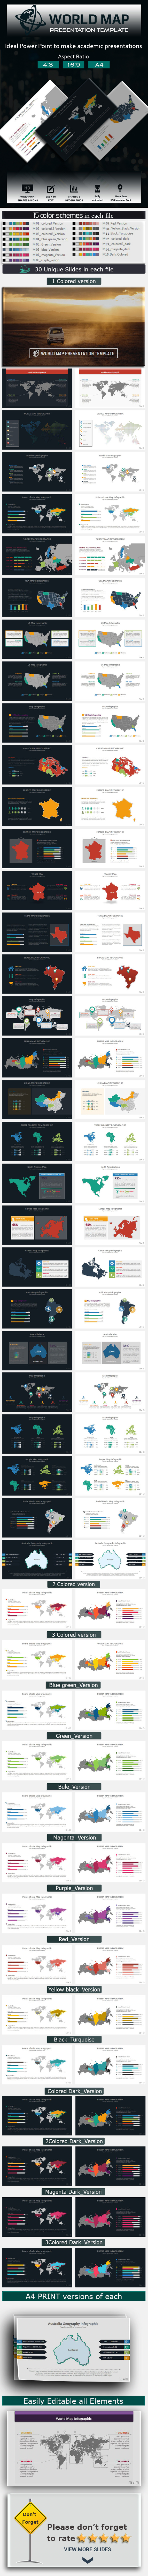 World Map PowerPoint Presentation Template